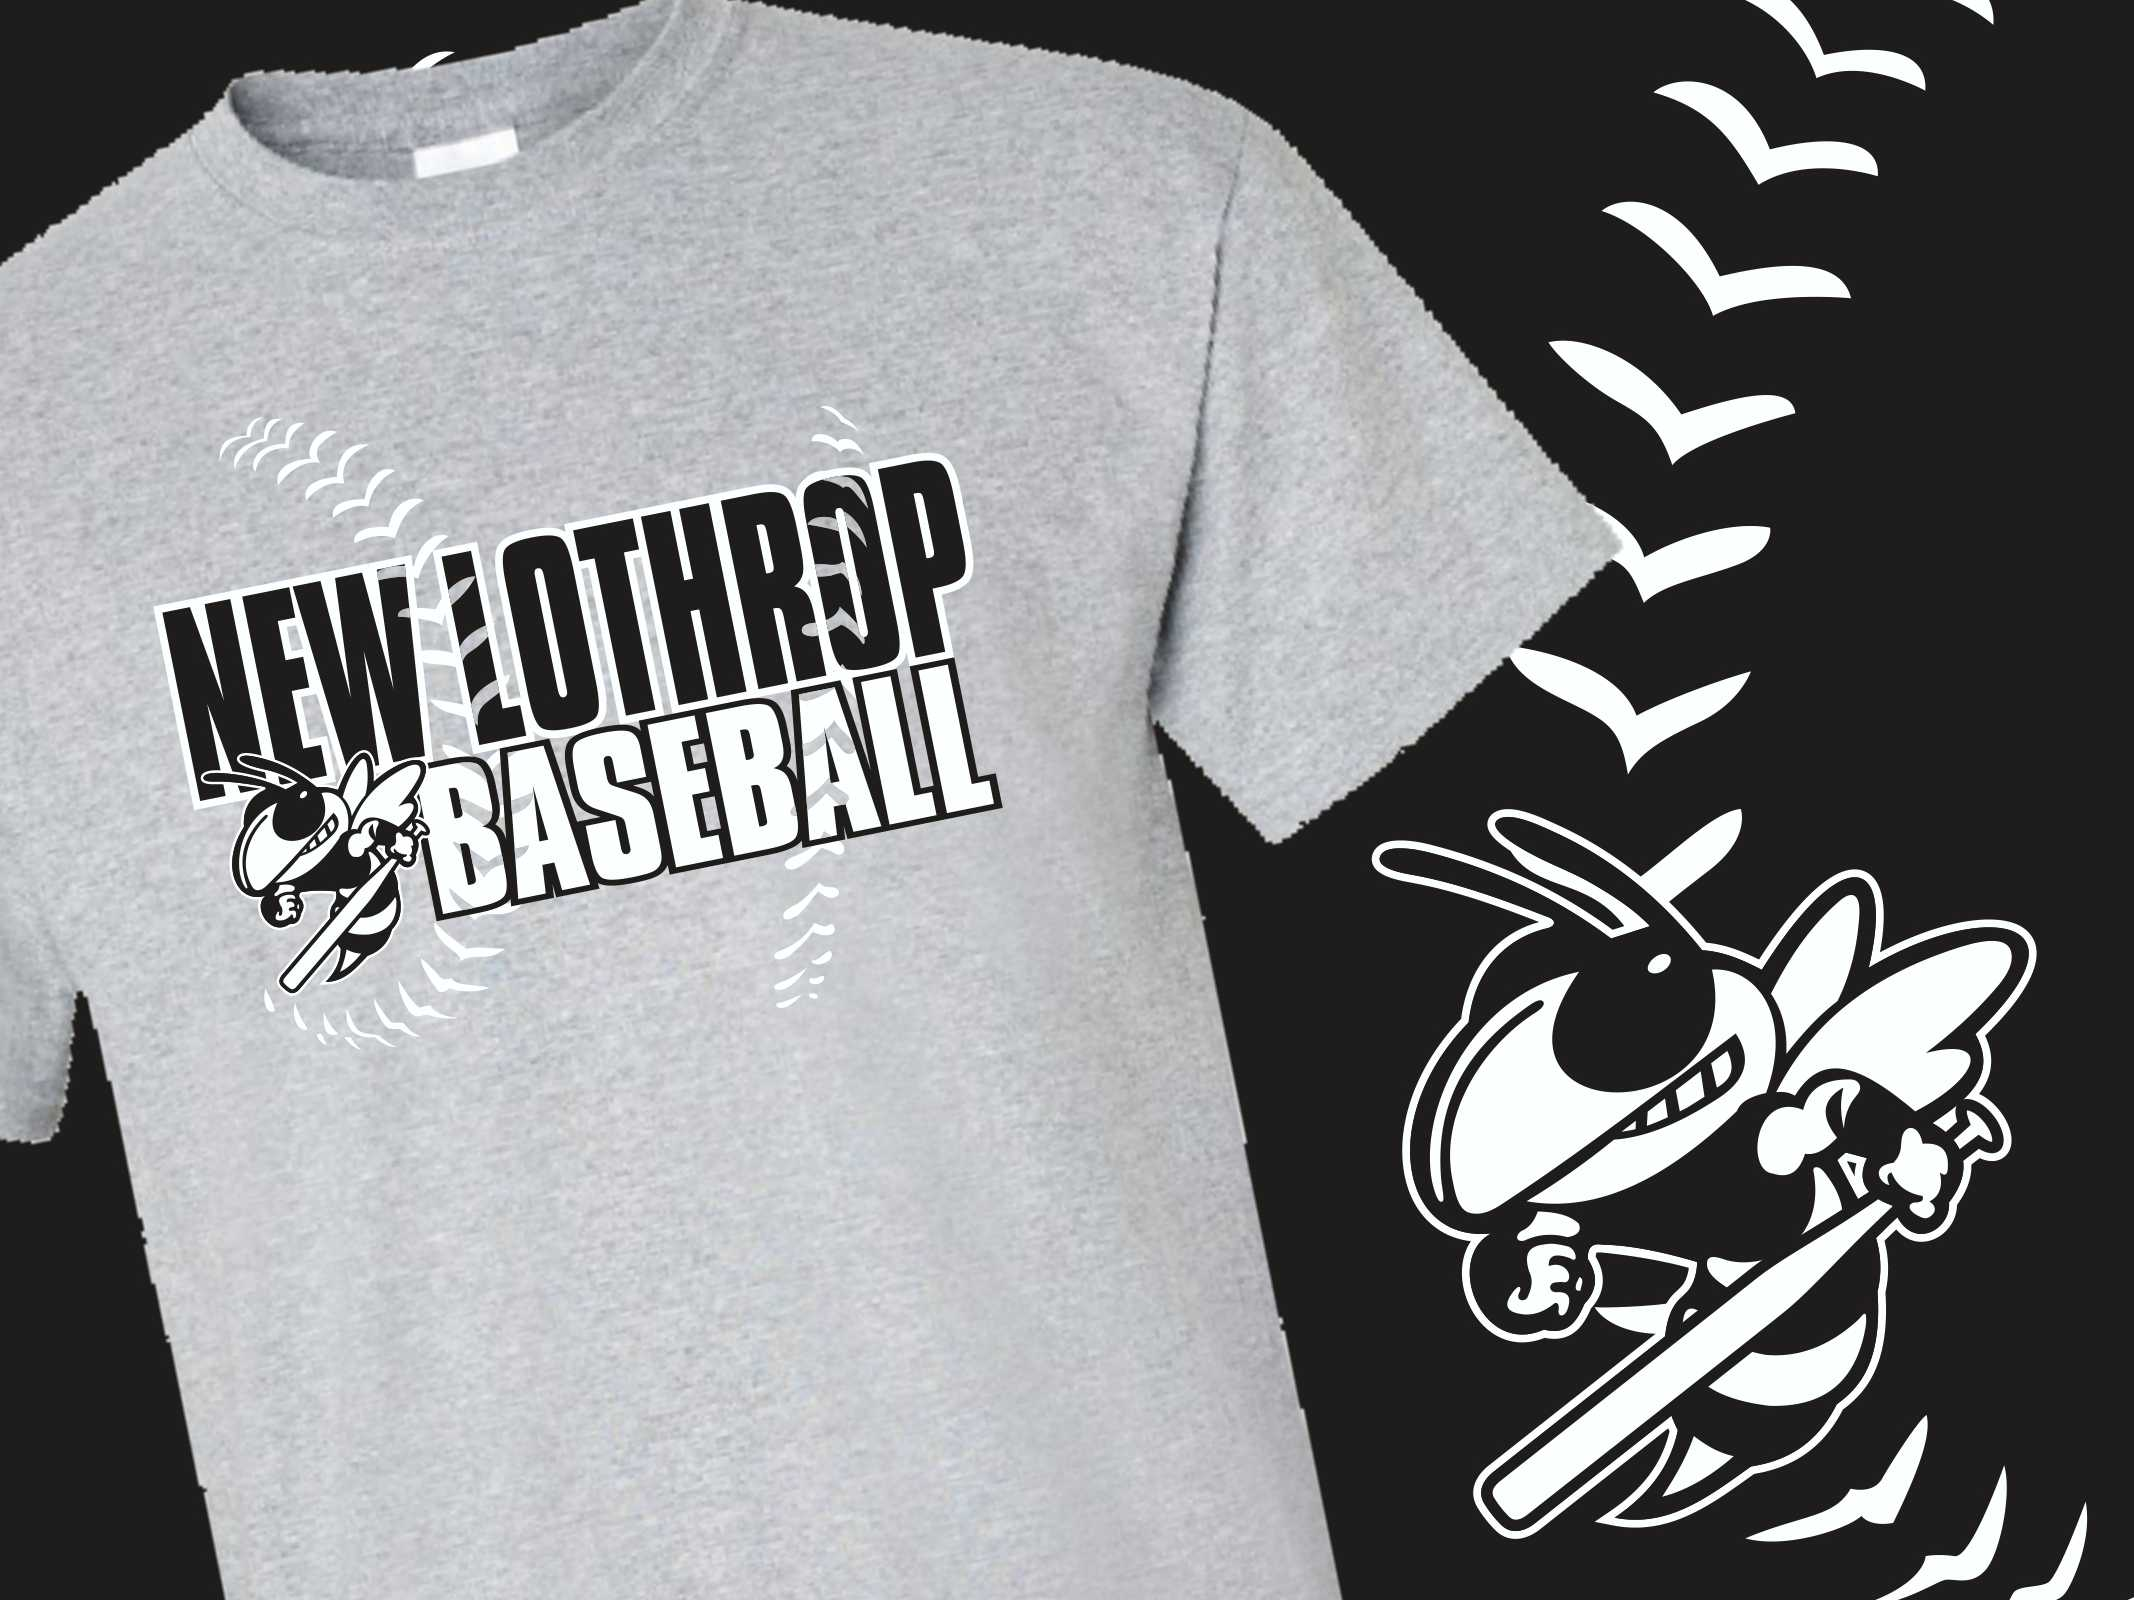 New Lathrop Baseball